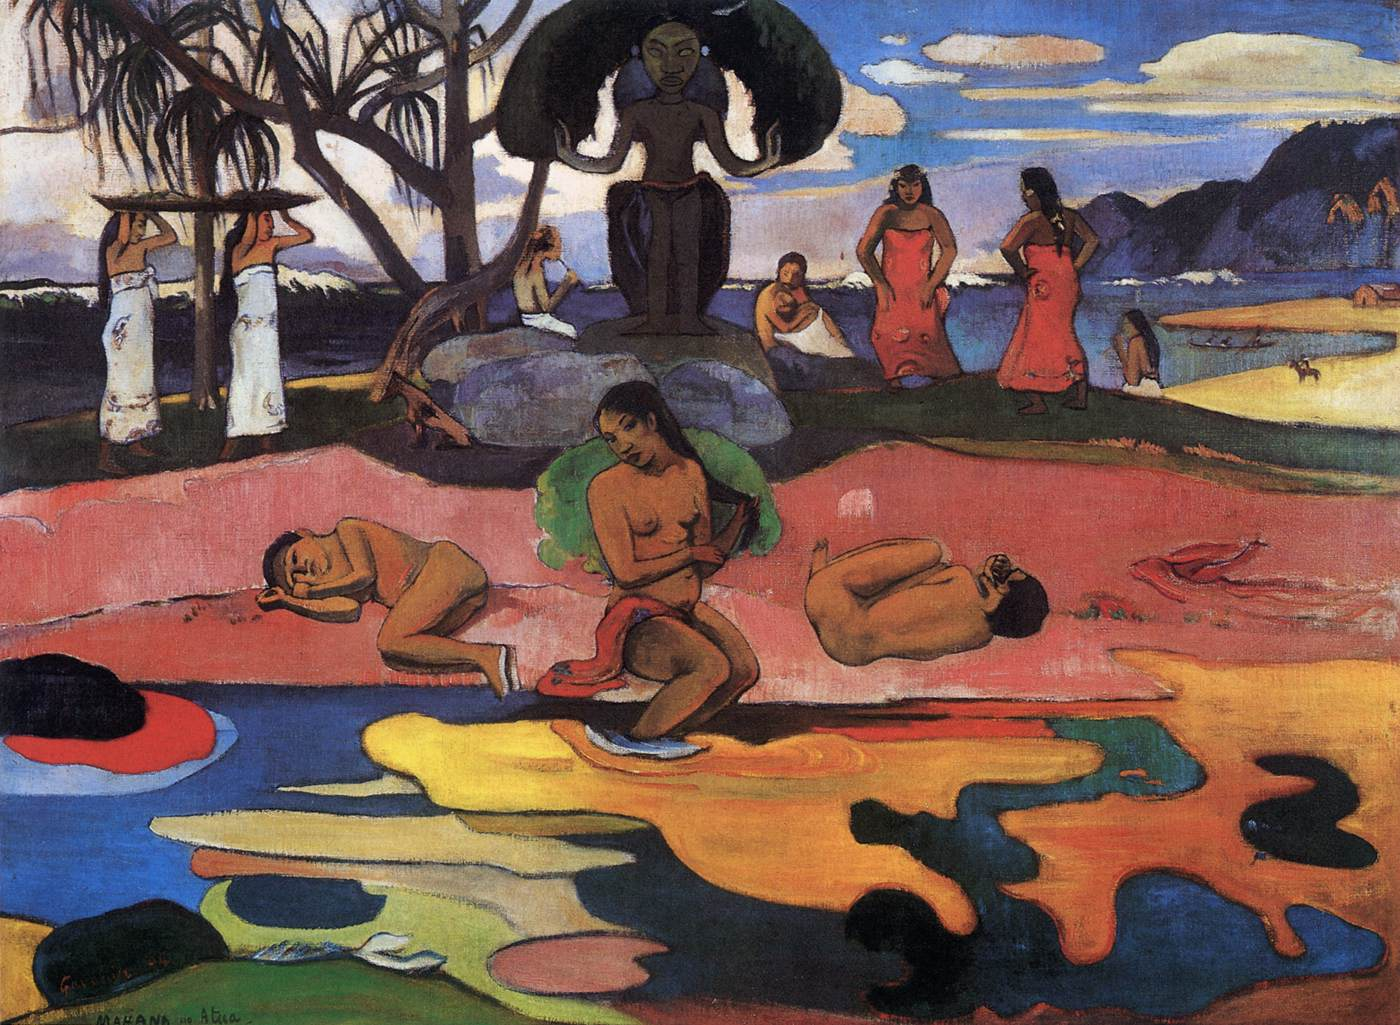 Mahana no atua (The Day of the God) by GAUGUIN, Paul